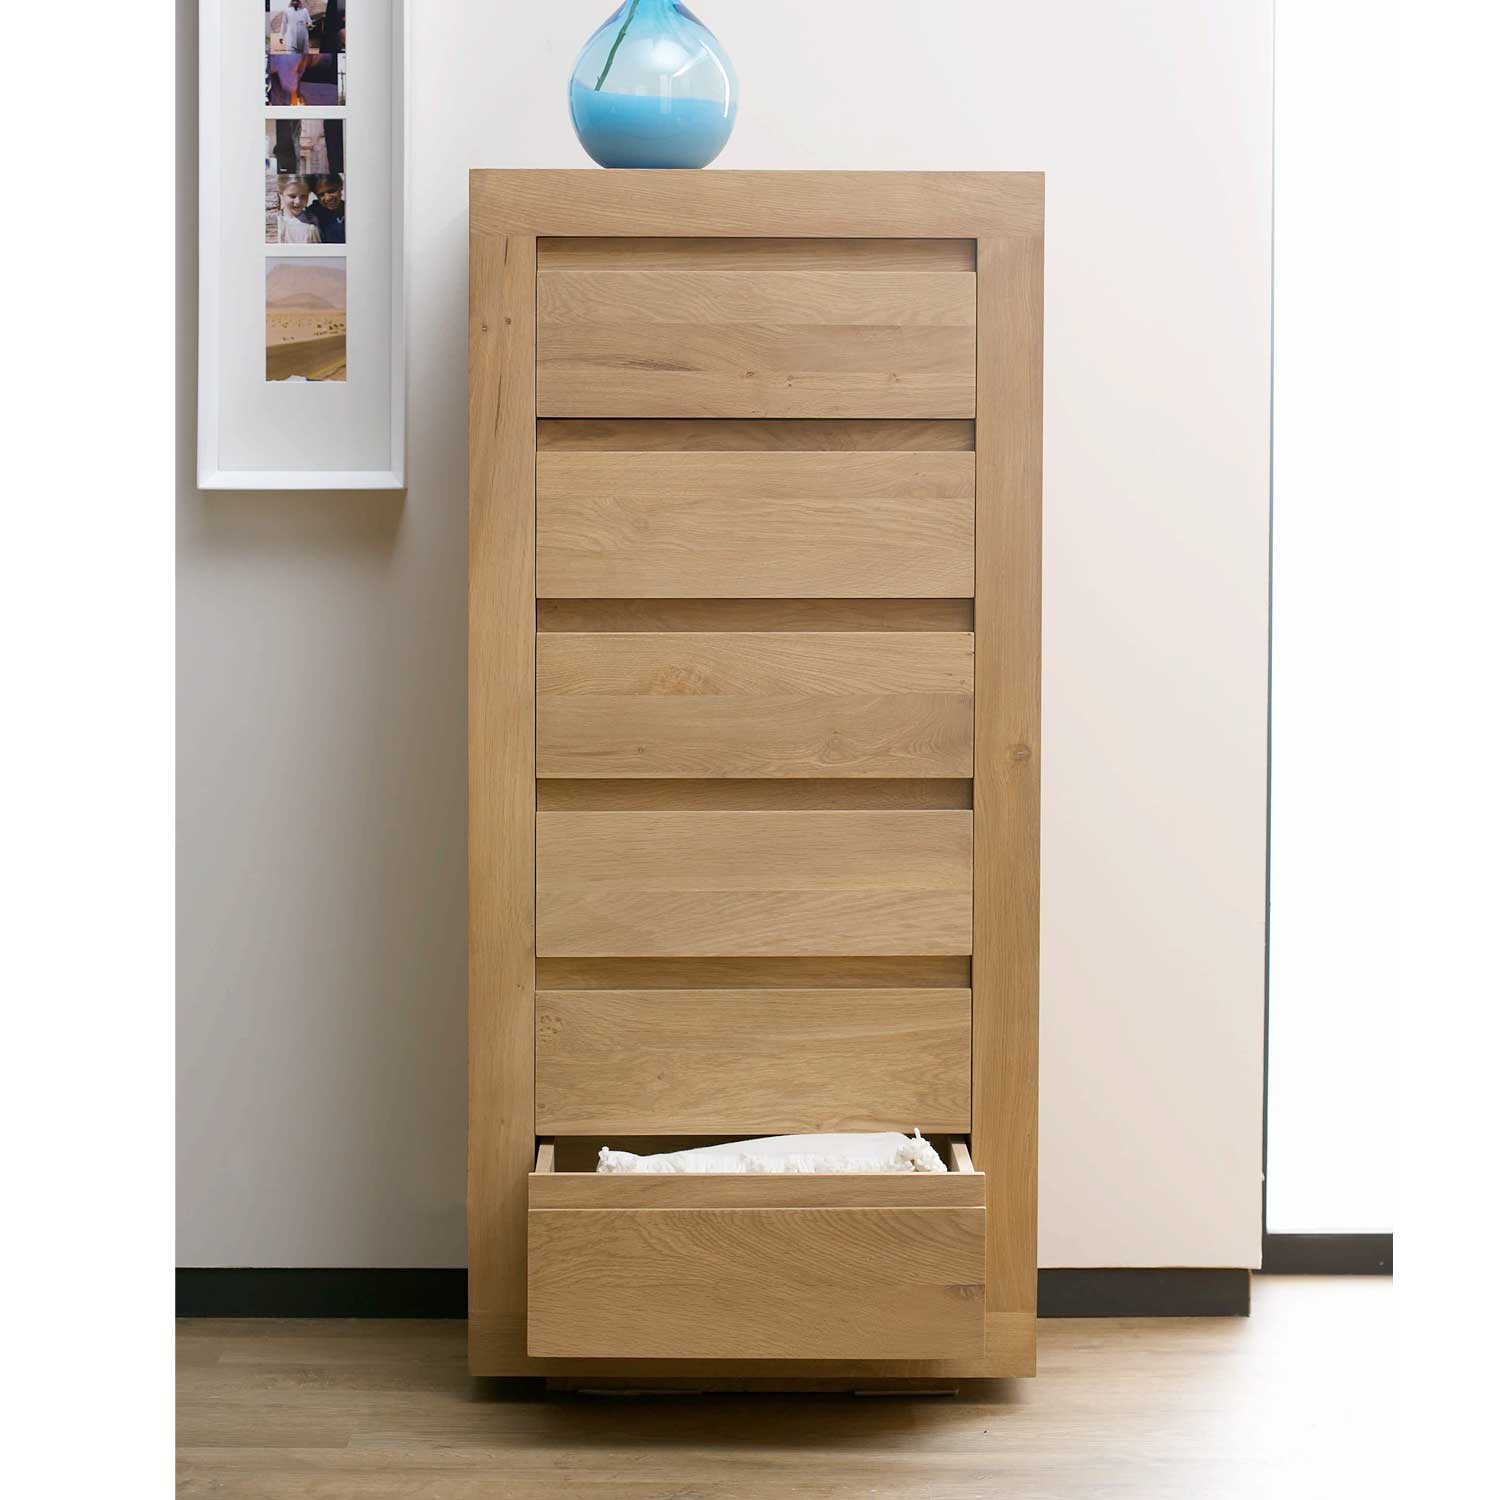 Ikea bedroom furniture chest of drawers - Ikea Bedroom Dressers Tall Narrow Chest Of Drawers Drawer Chest